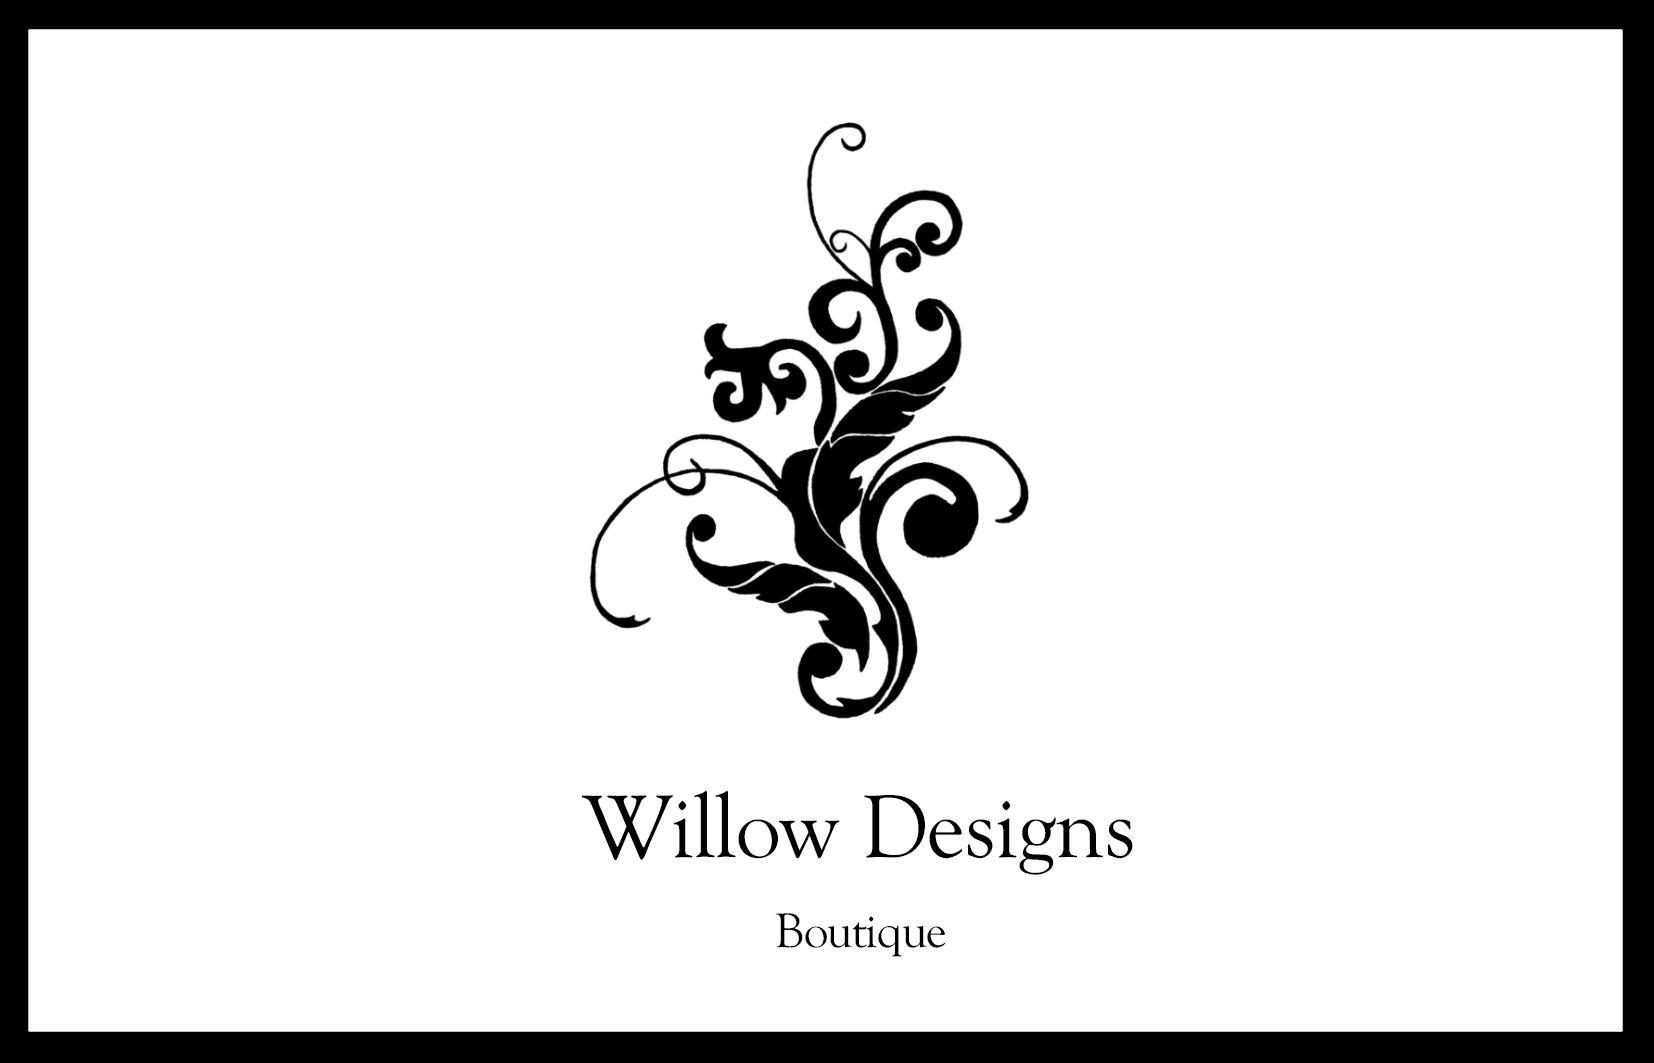 willowdesignsboutiqu